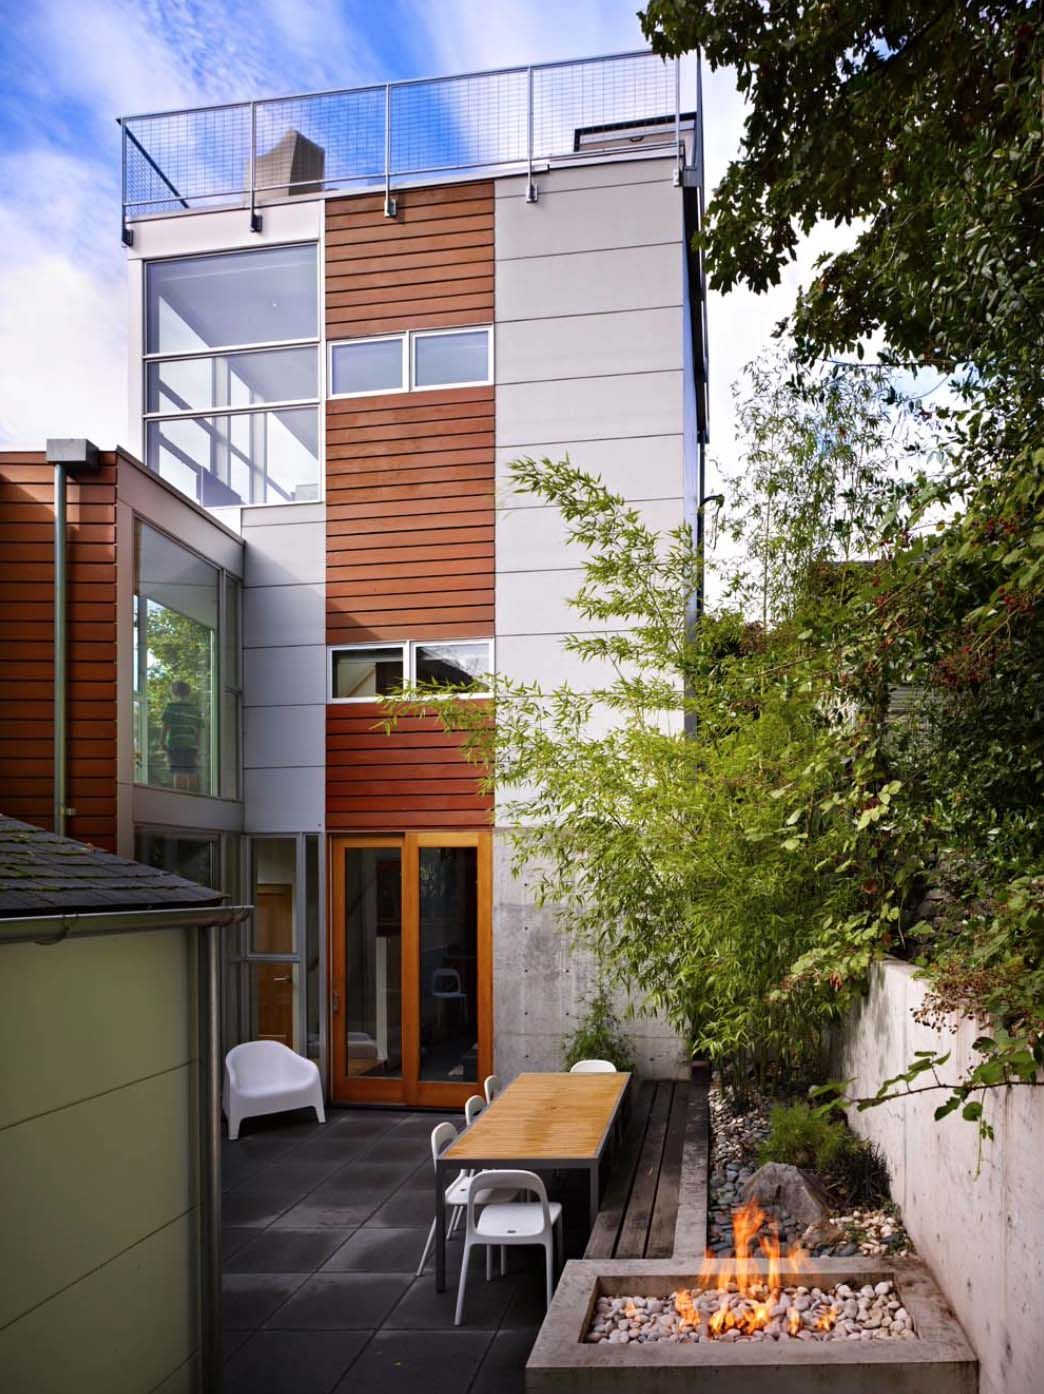 striking three-story modern dwelling in seattle with a rooftop